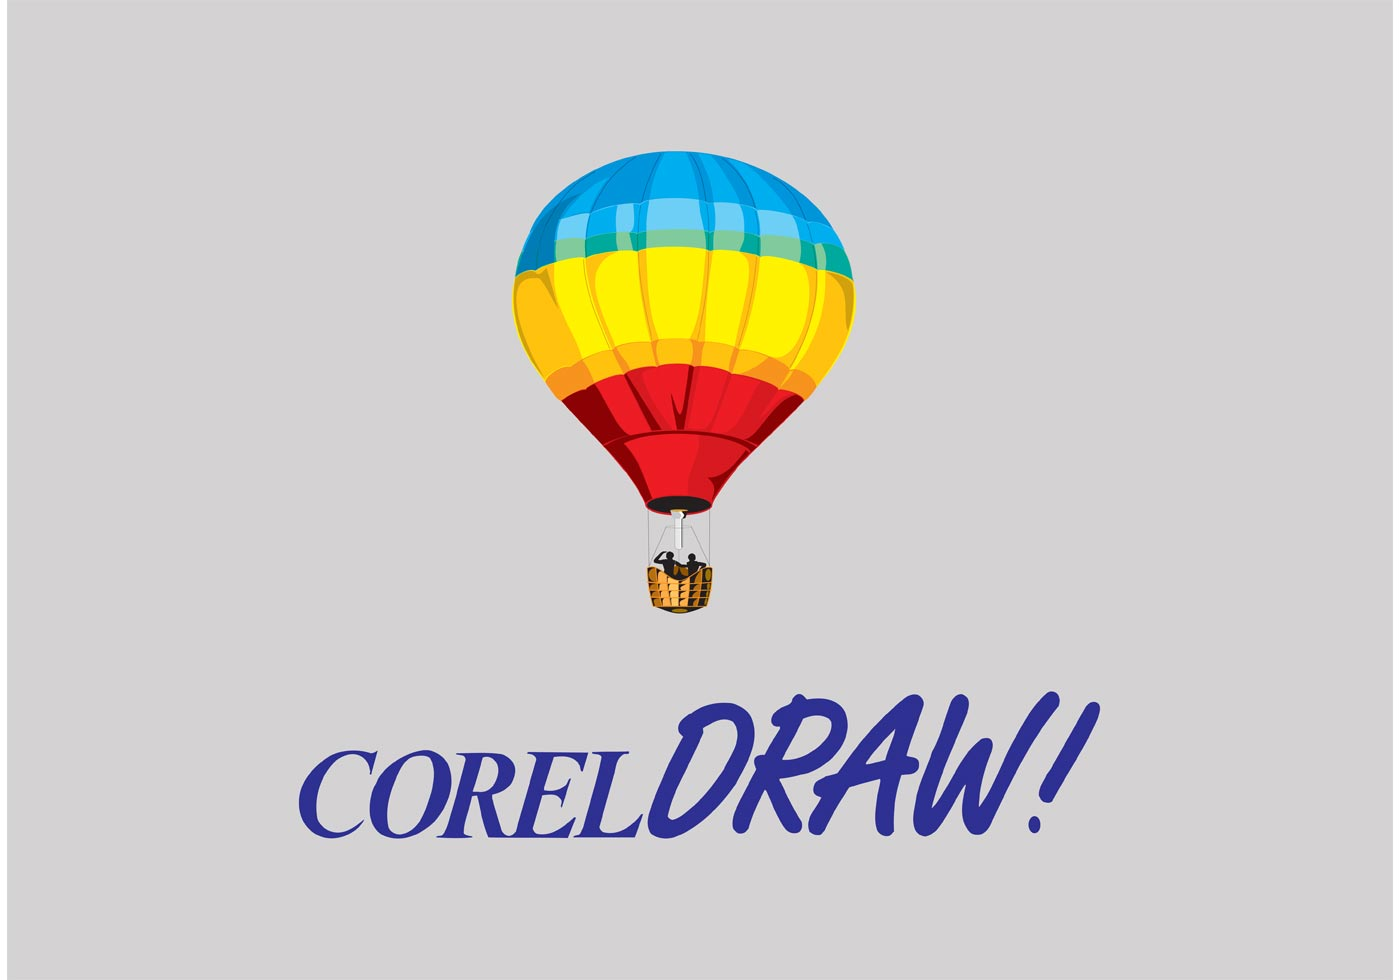 Corel Draw Free Vector Art 5787 Free Downloads